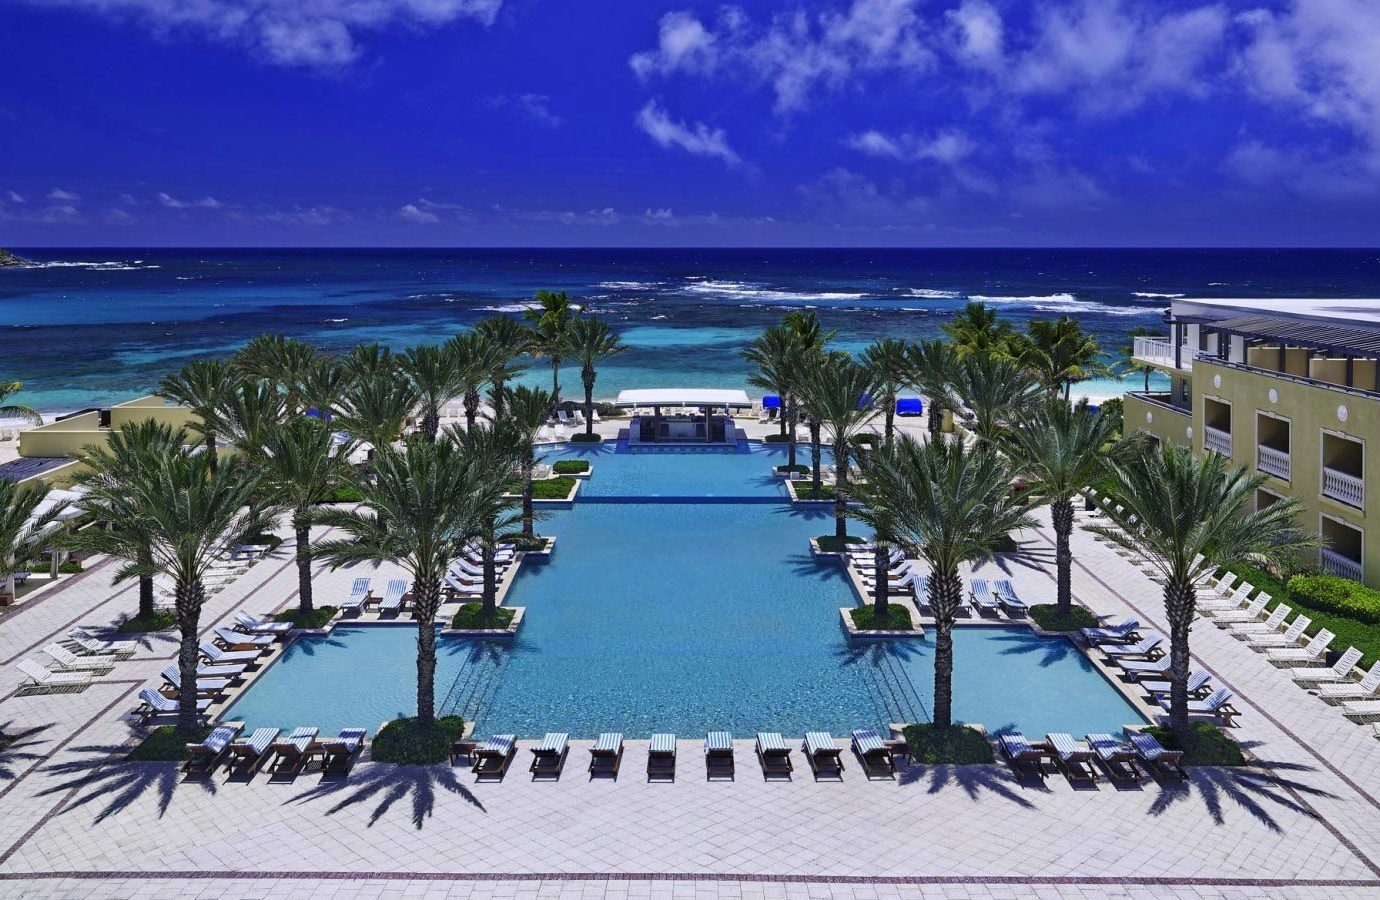 Hotels water outdoor sky Resort Beach swimming pool resort town palm tree caribbean Ocean arecales tropics vacation leisure shore tourism real estate condominium hotel estate Deck Sea tree palm lined overlooking sandy